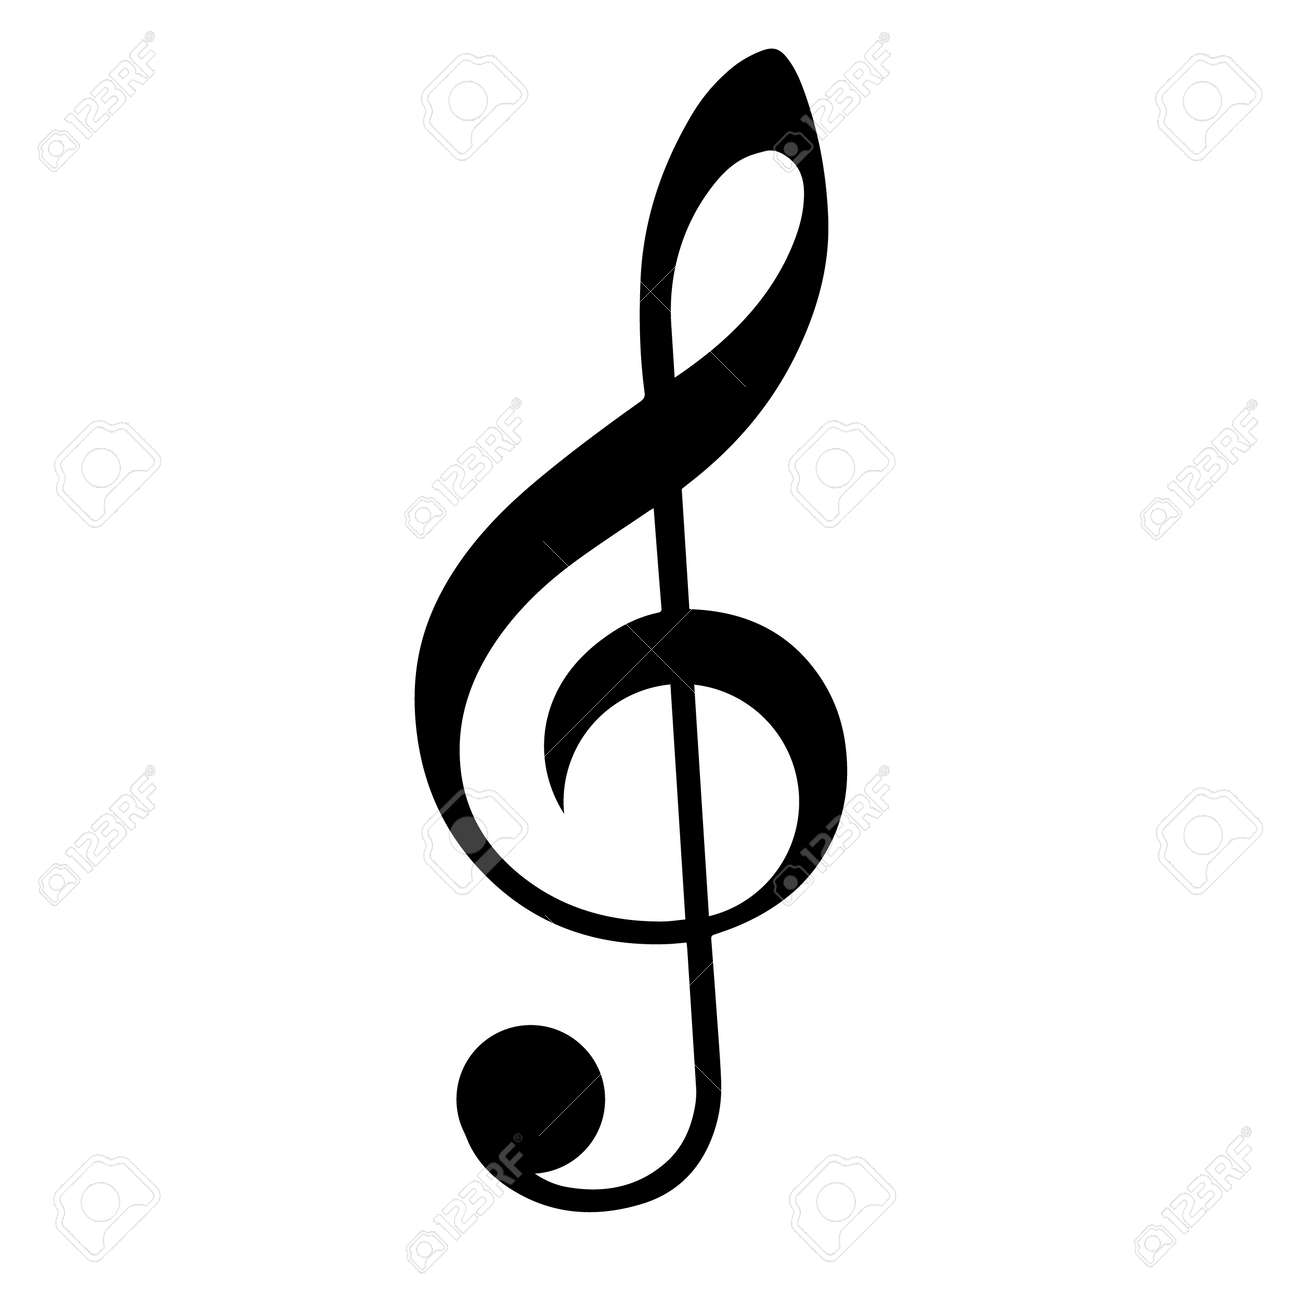 music clef isolated on white background. Vector illustration. - 76542098